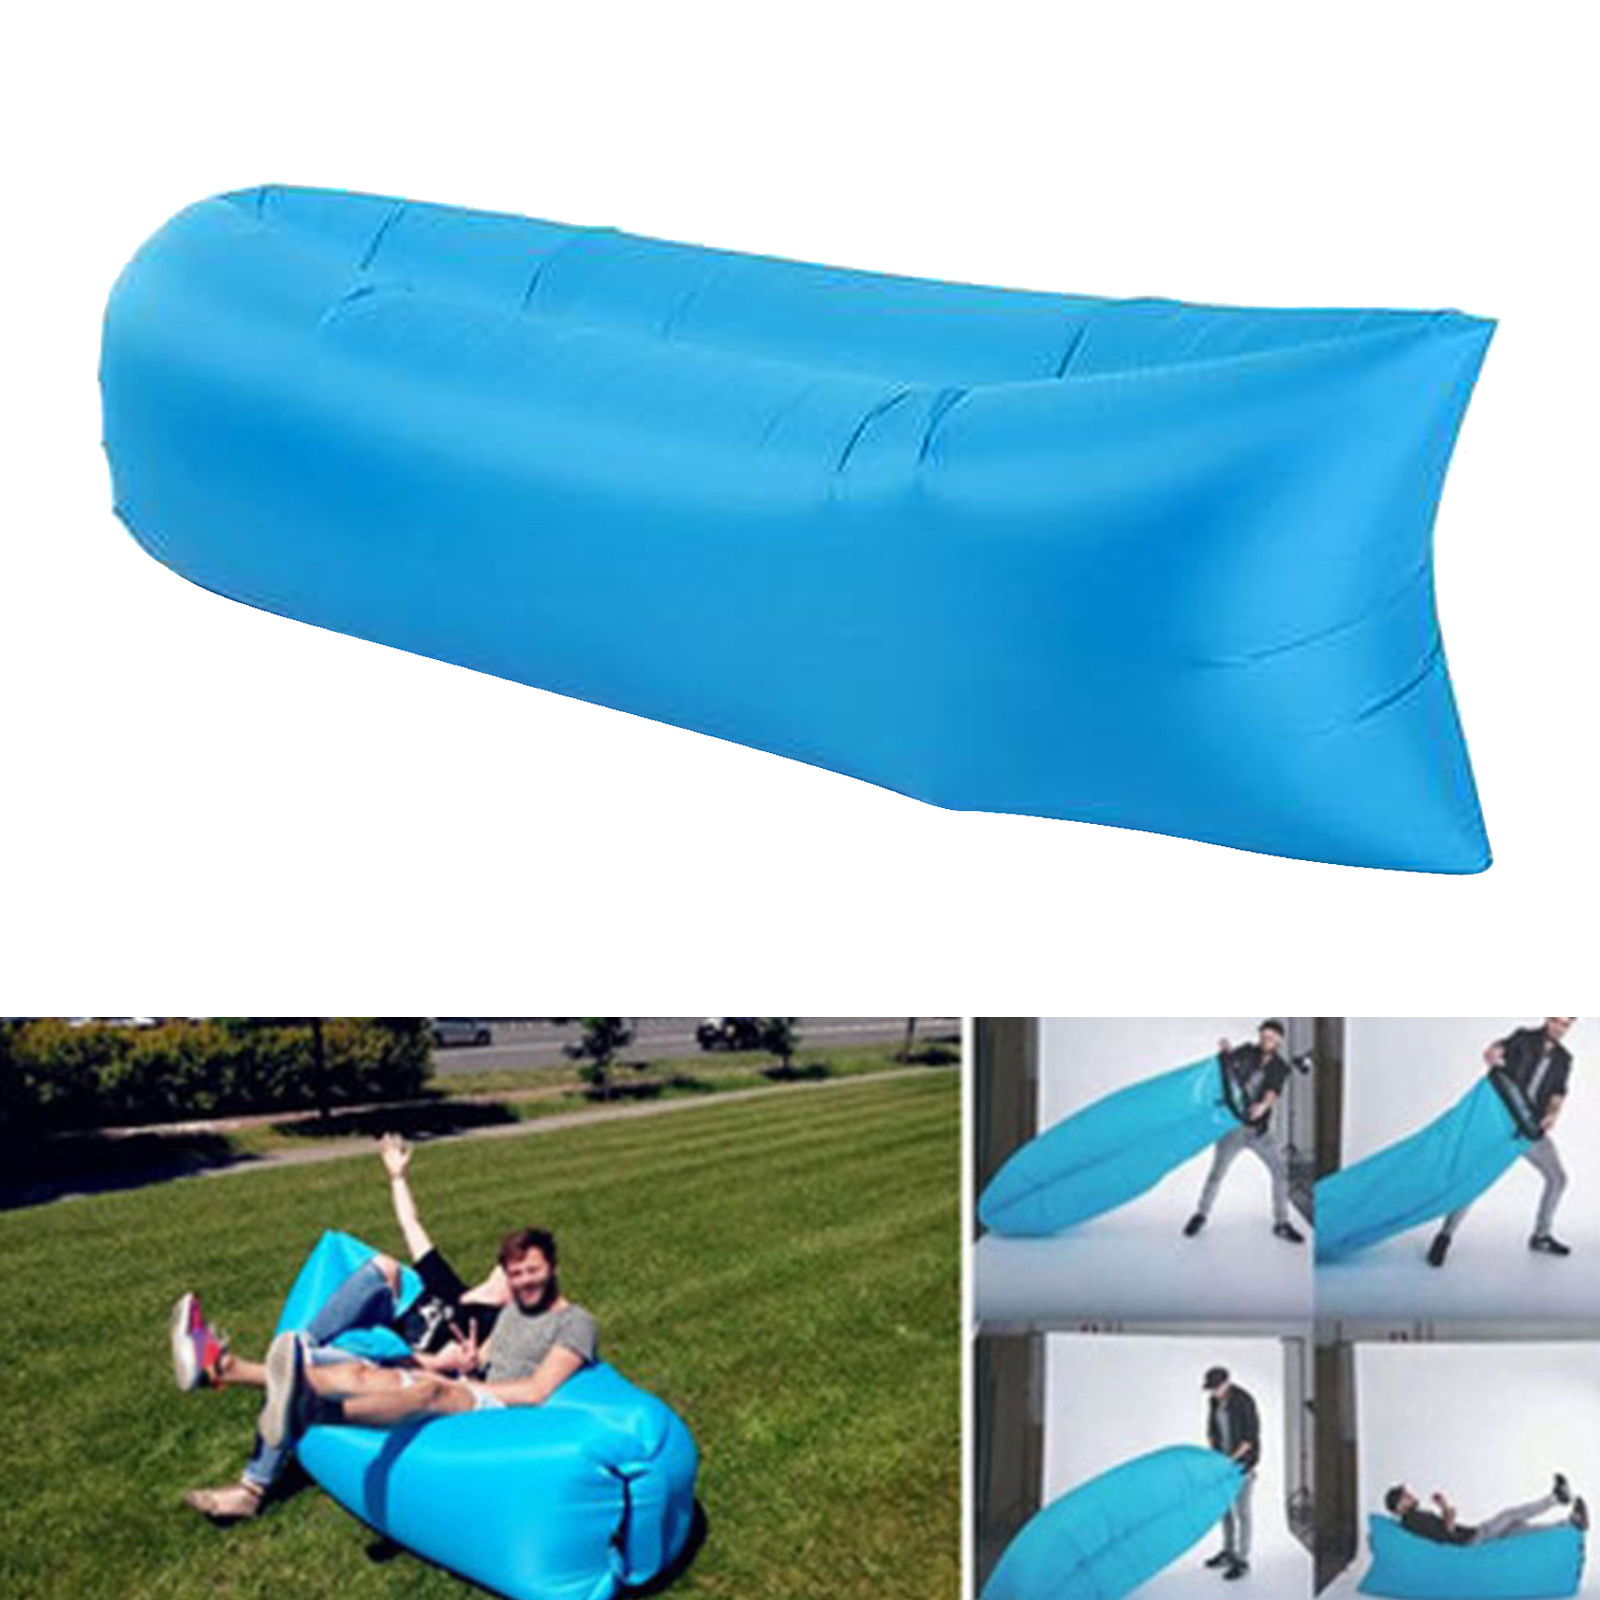 Inflatable Air Bed Sofa Lounger Couch Chair Bag Hangout Outdoor Camping Beach Inflatable Couch Sofa Indoor Outdoor Adults Kids